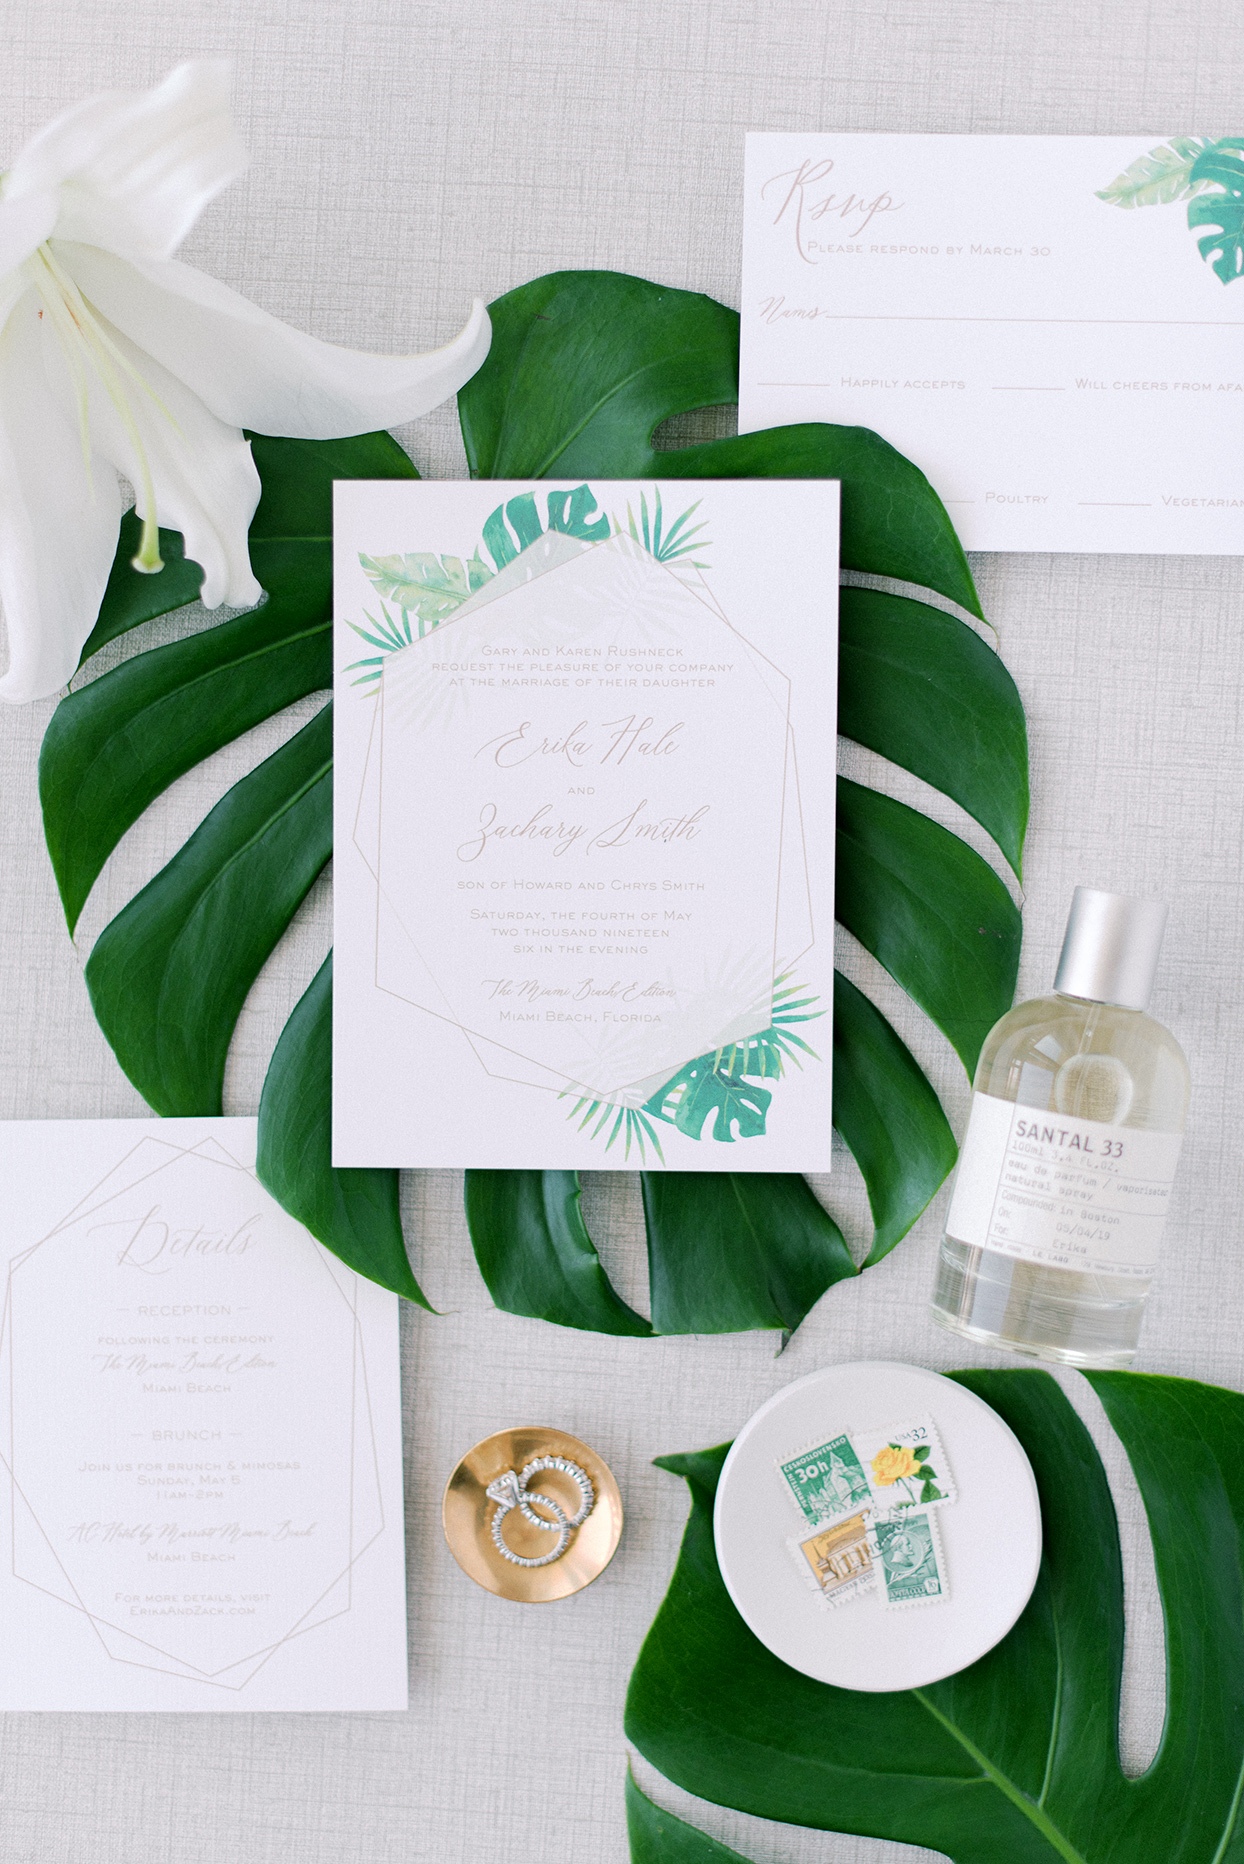 Wedding invitations with bespoke design printed on white linen paper